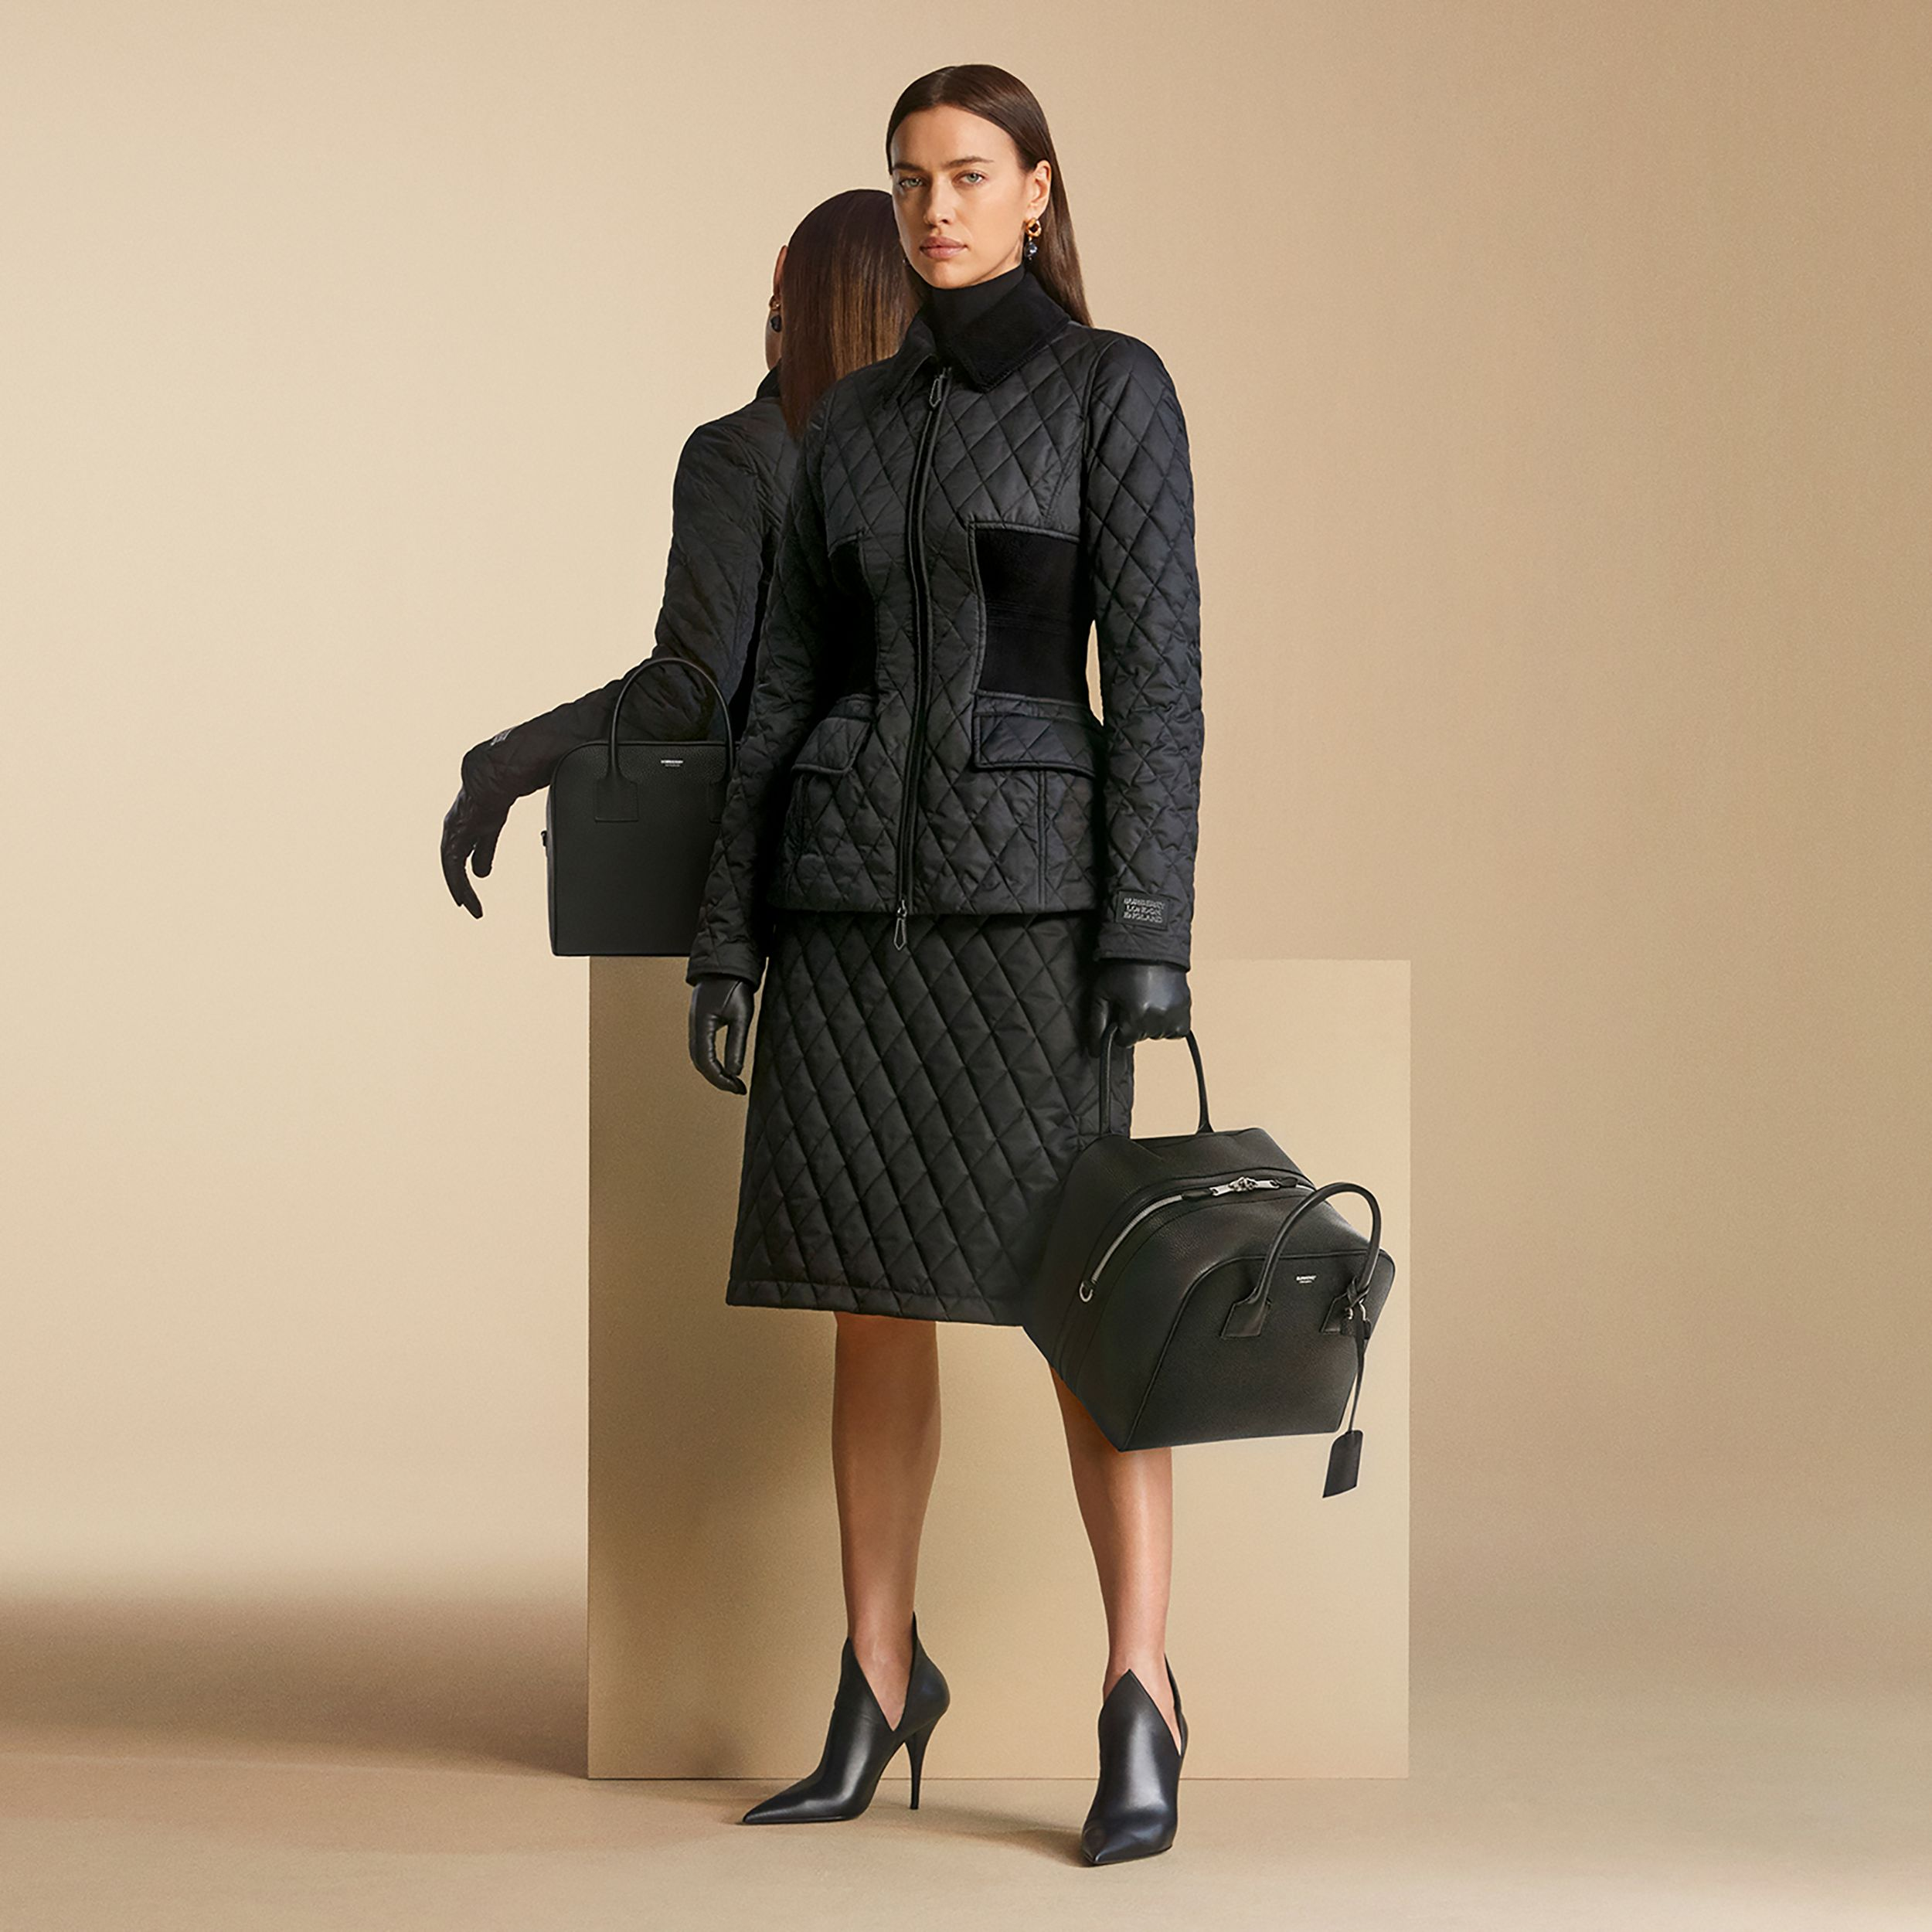 Diamond Quilted A-line Skirt in Black - Women | Burberry - 2